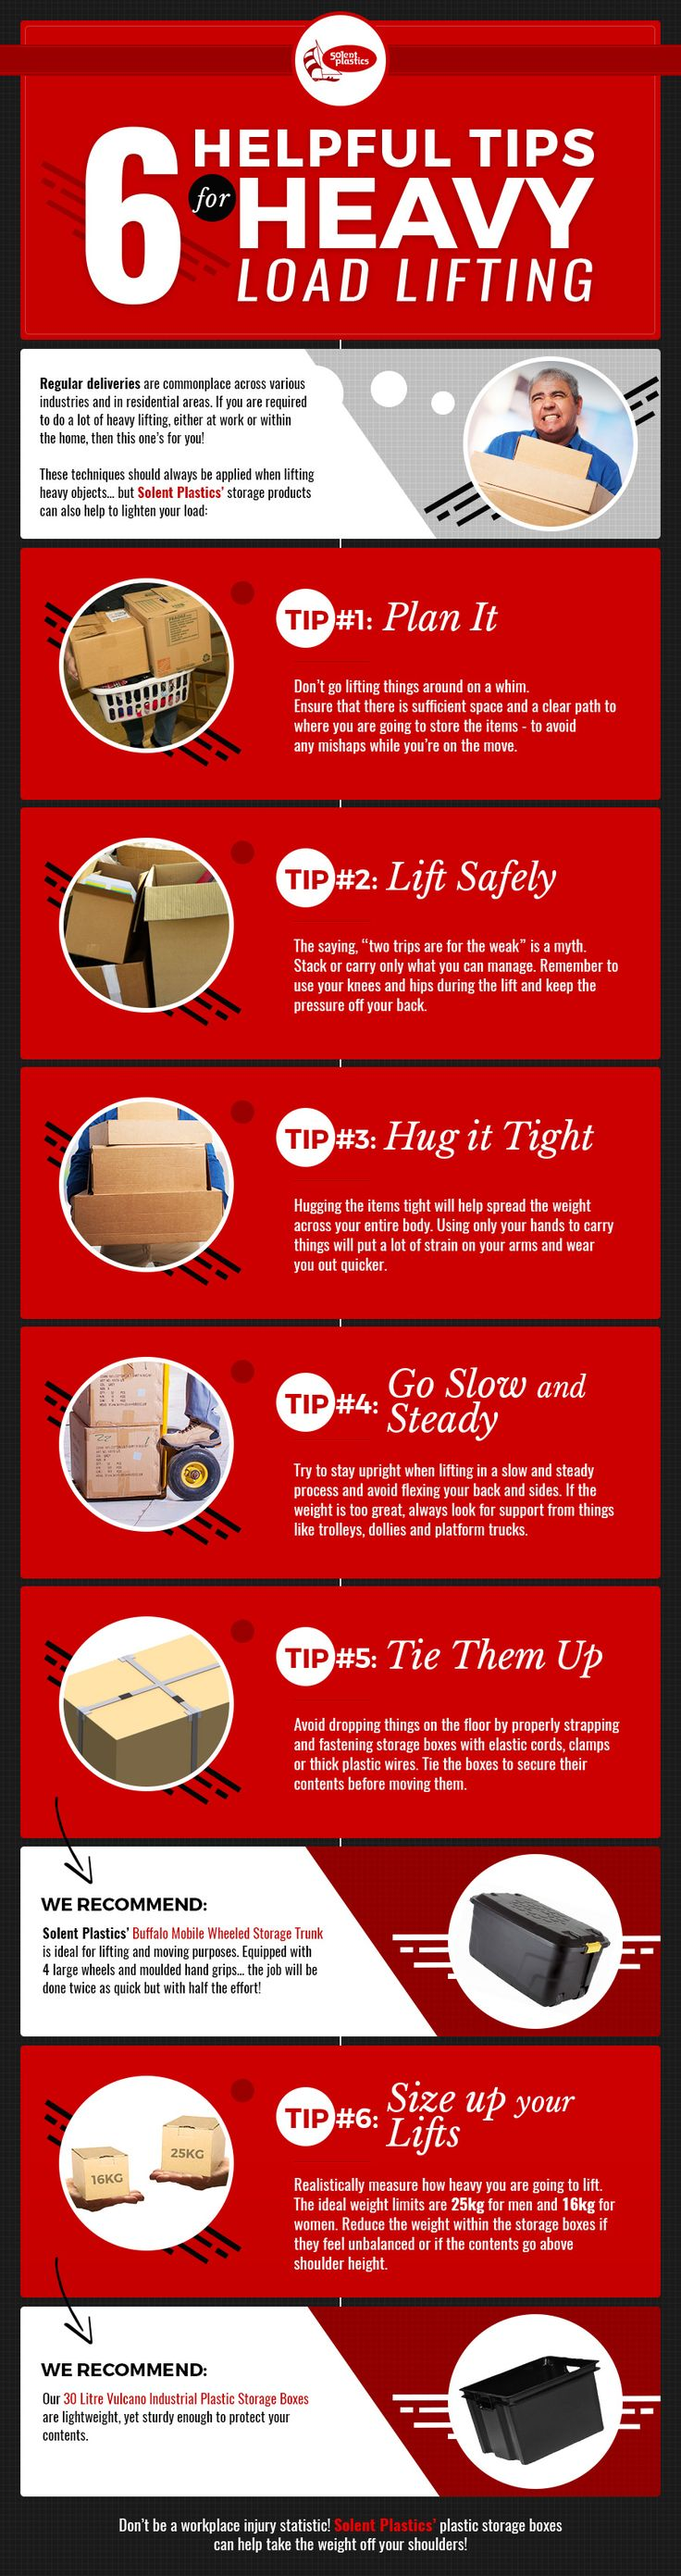 6 Helpful Tips for Heavy Load Lifting...